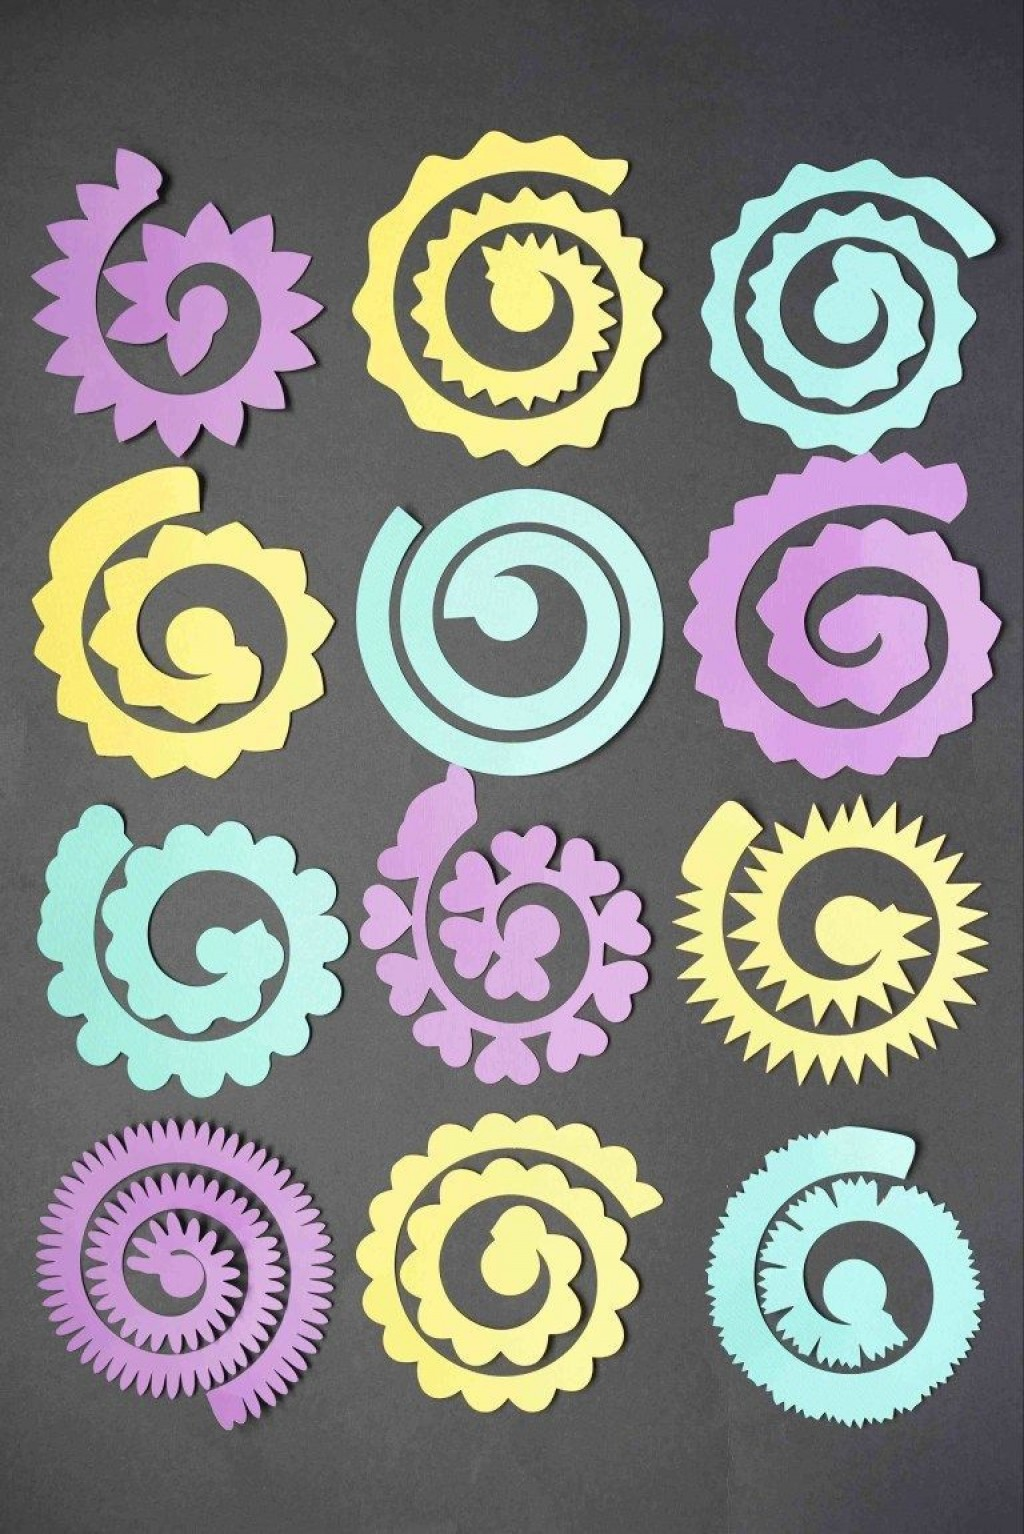 004 Awesome Free Rolled Paper Flower Template For Cricut Sample Large